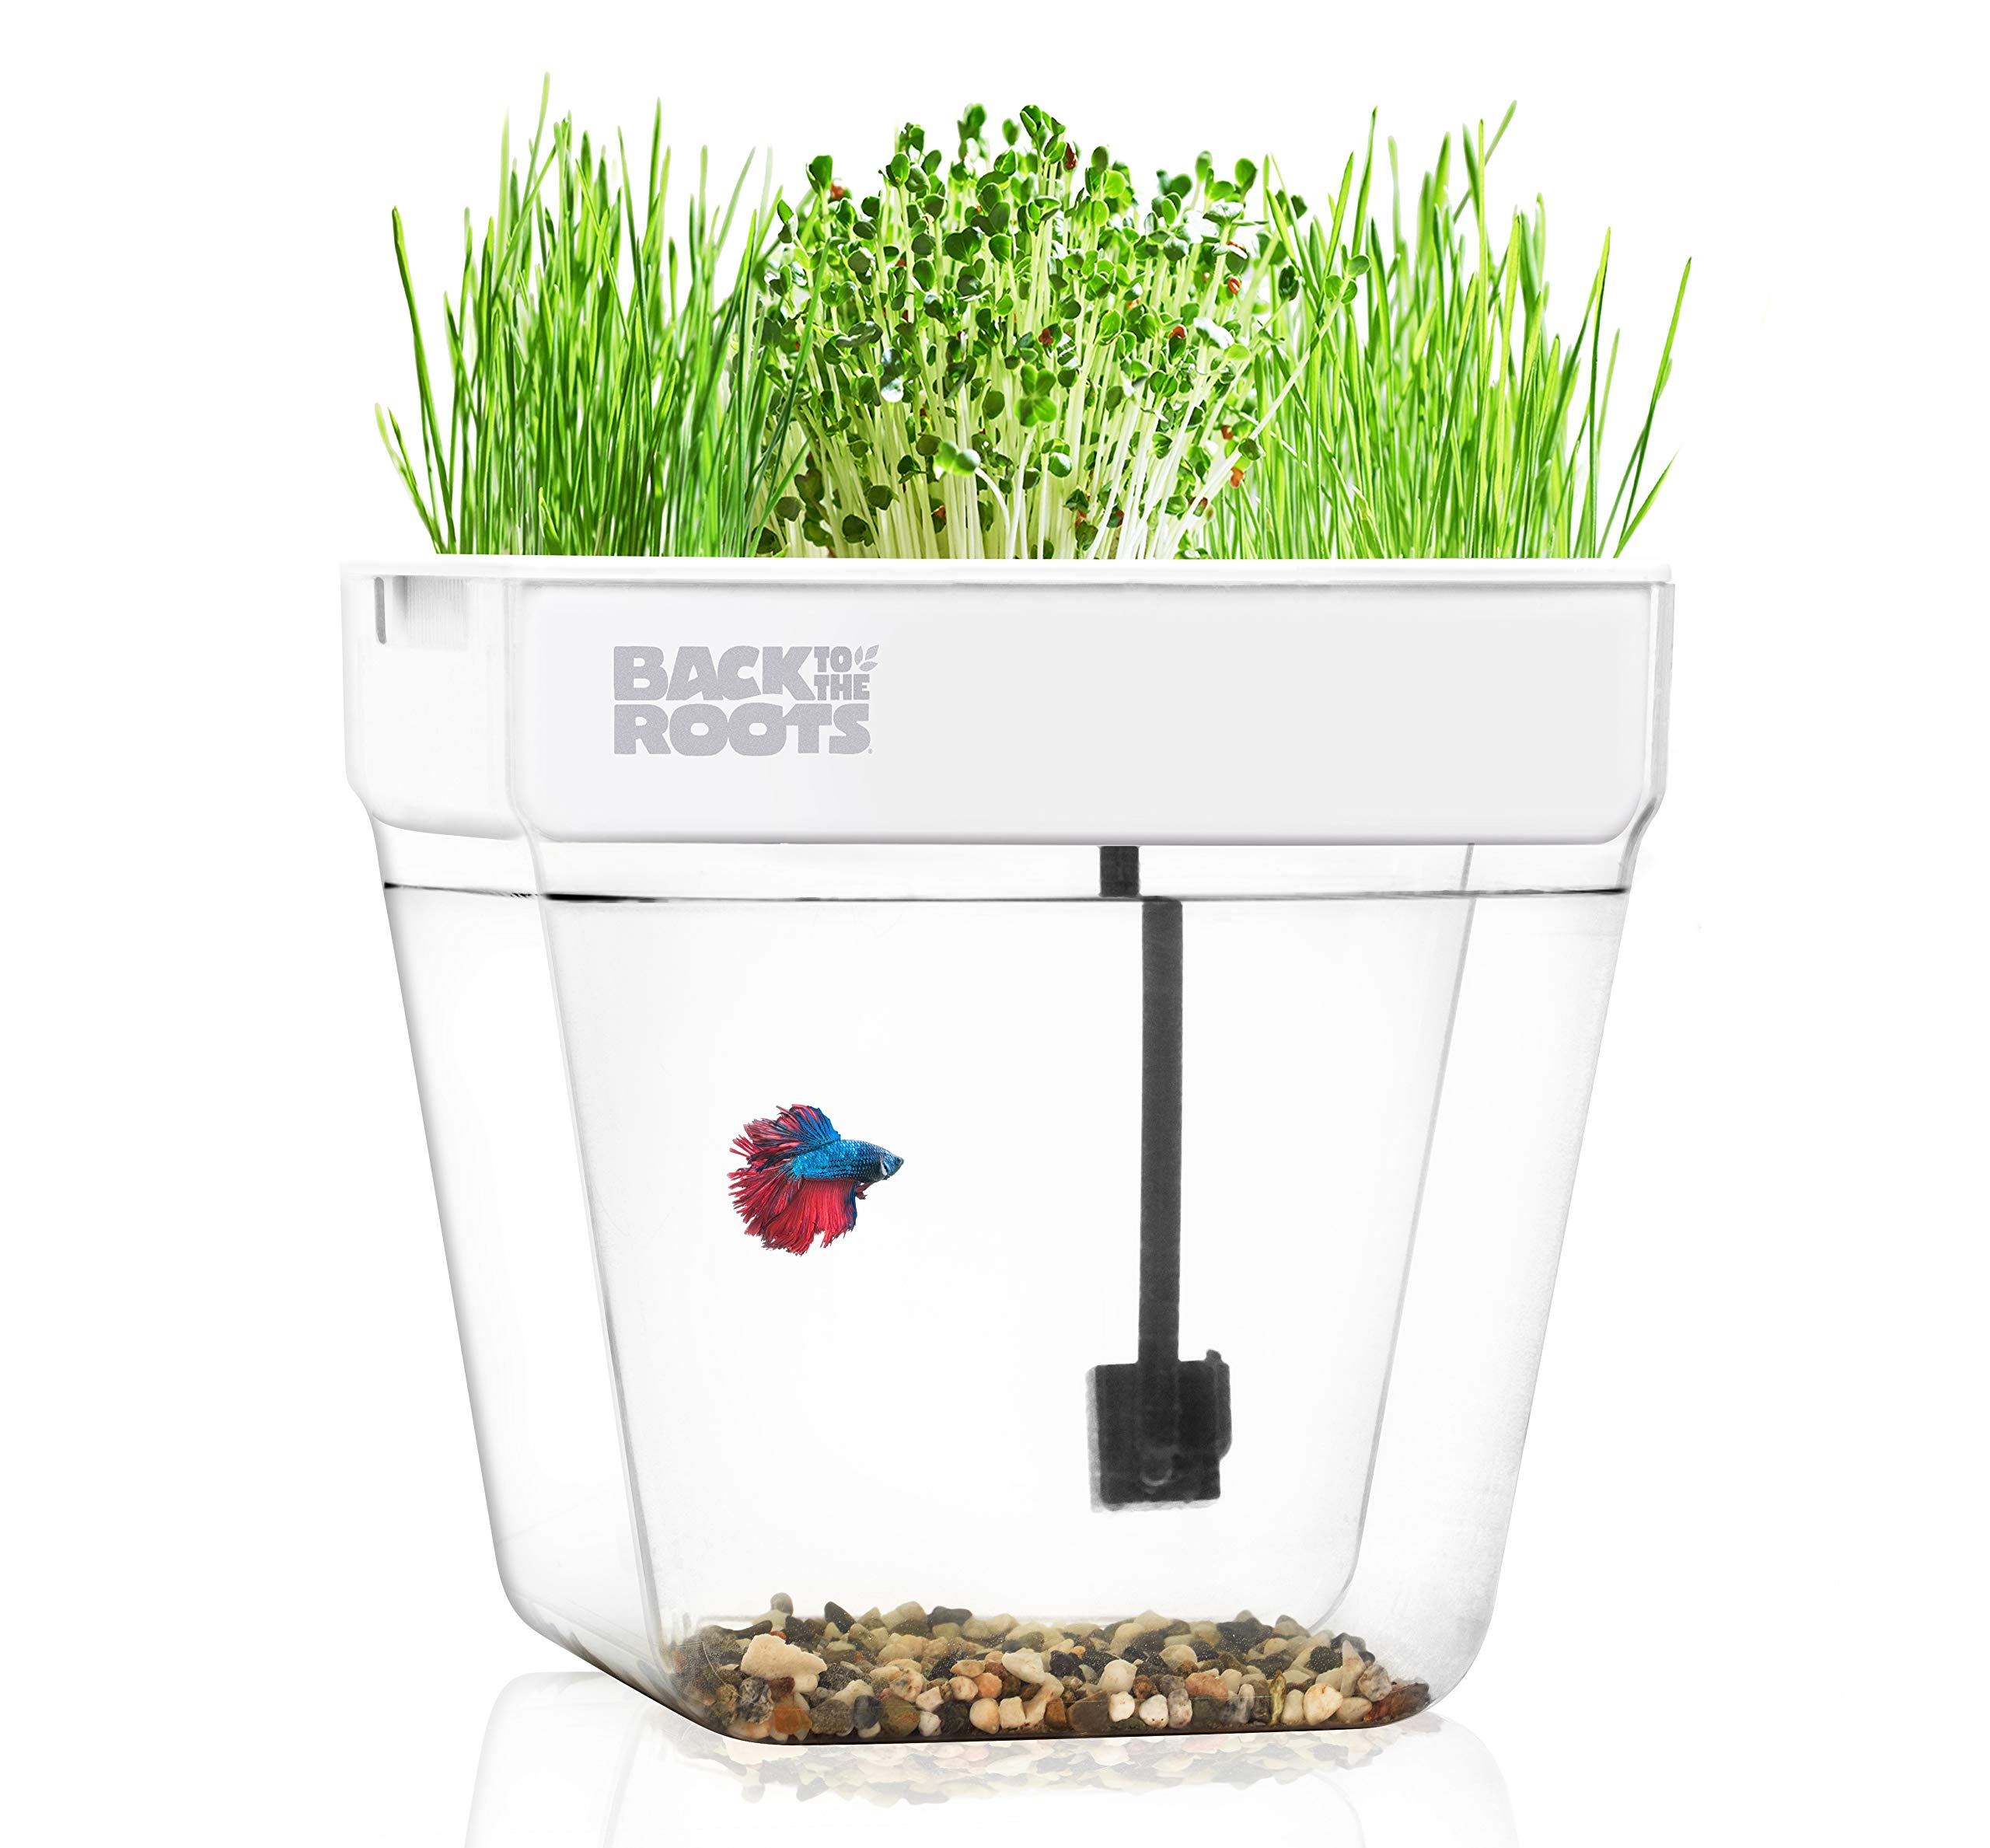 Water Garden, Self-Cleaning Fish Tank That Grows Food, Mini Aquaponic Ecosystem (Great Gardening Gift & Family Project) by Back to the Roots